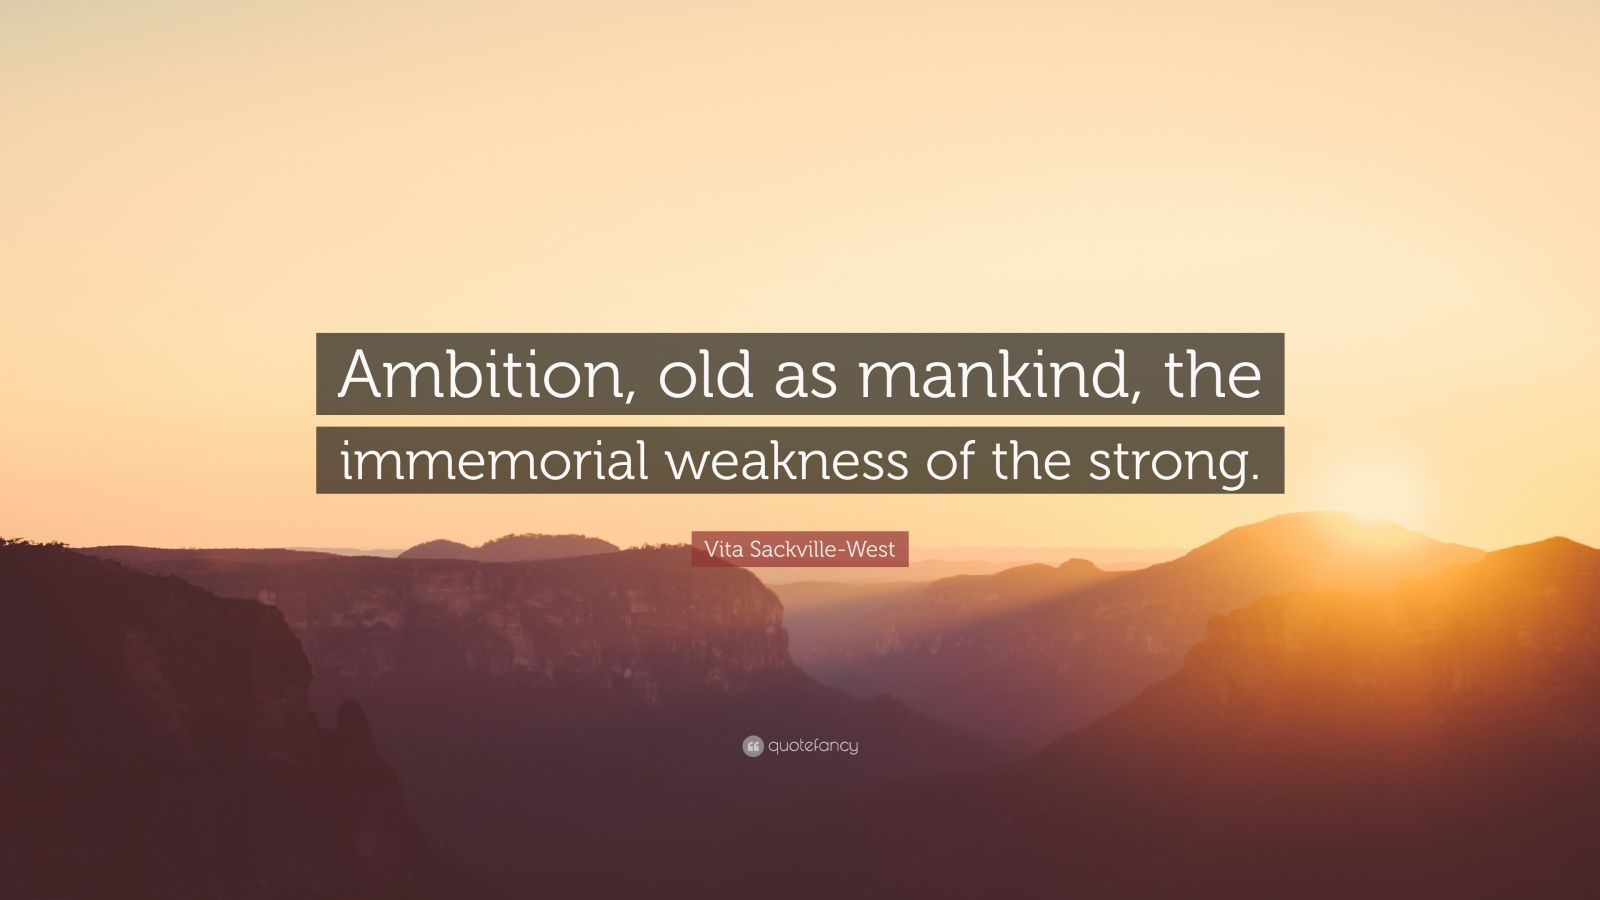 """Vita Sackville-West Quote: """"Ambition, old as mankind, the immemorial weakness of the strong."""""""